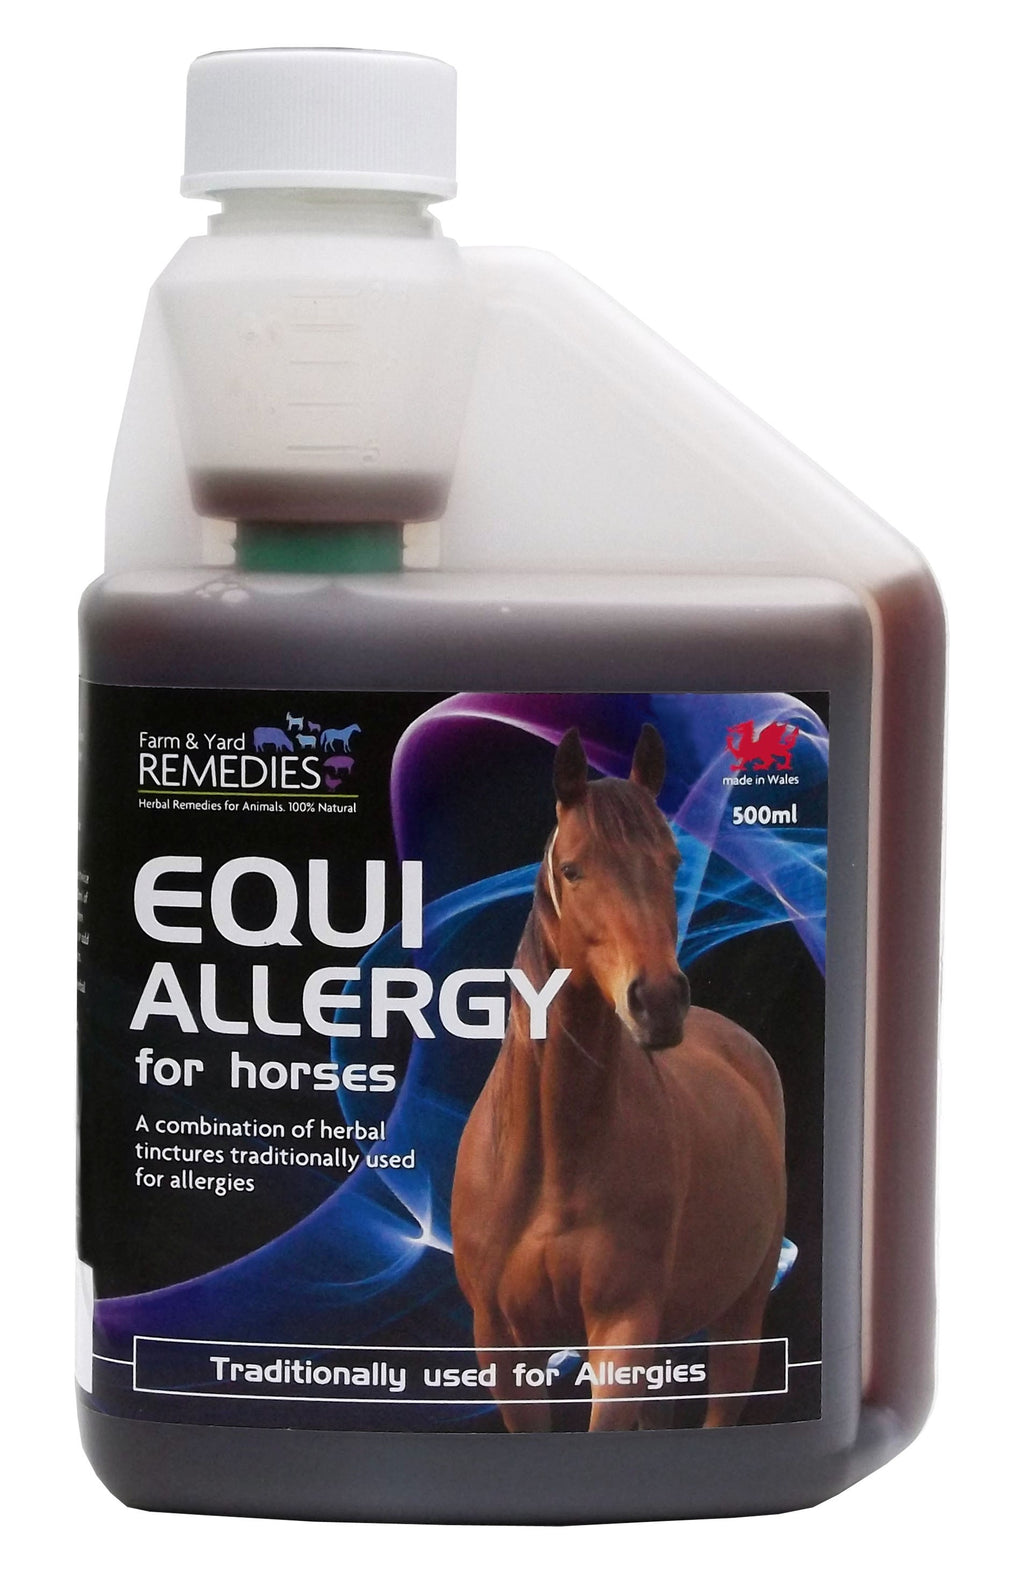 Farm and Yard Remedies Equi Allergy Anti-histamine Anti-inflammatory Herbal Supplement for Horses All Natural